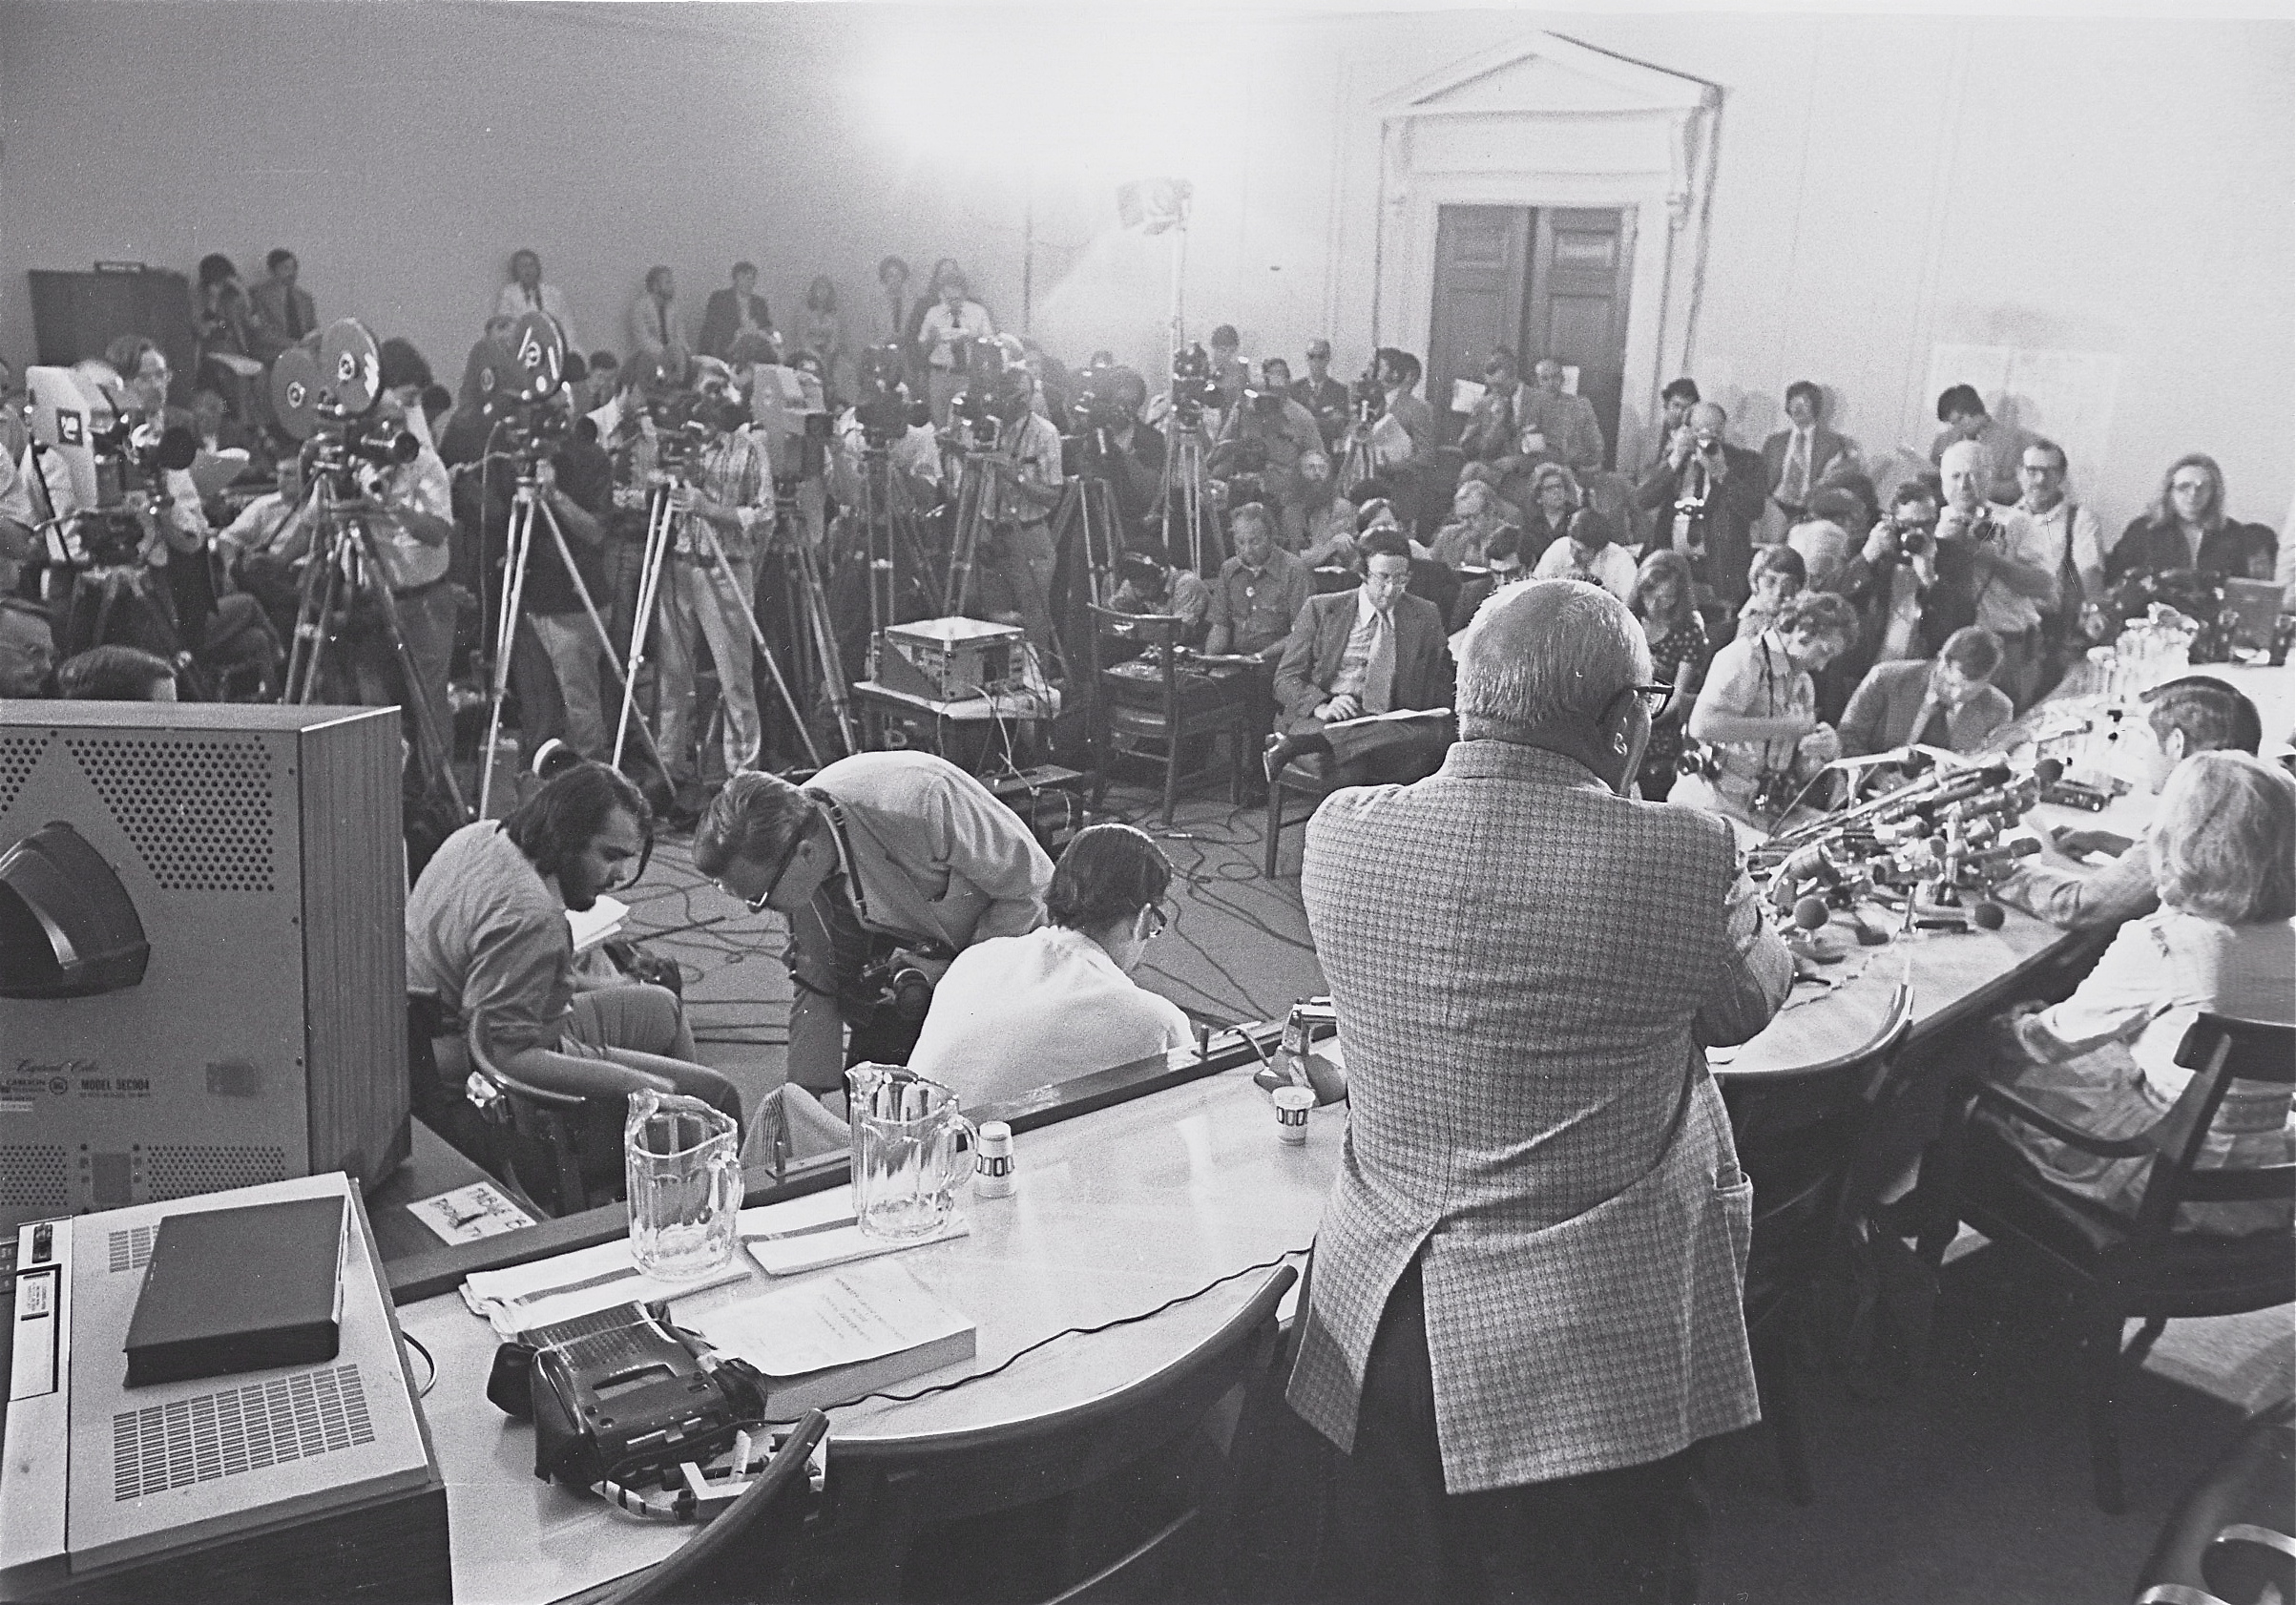 News Conference During Watergate Hearings